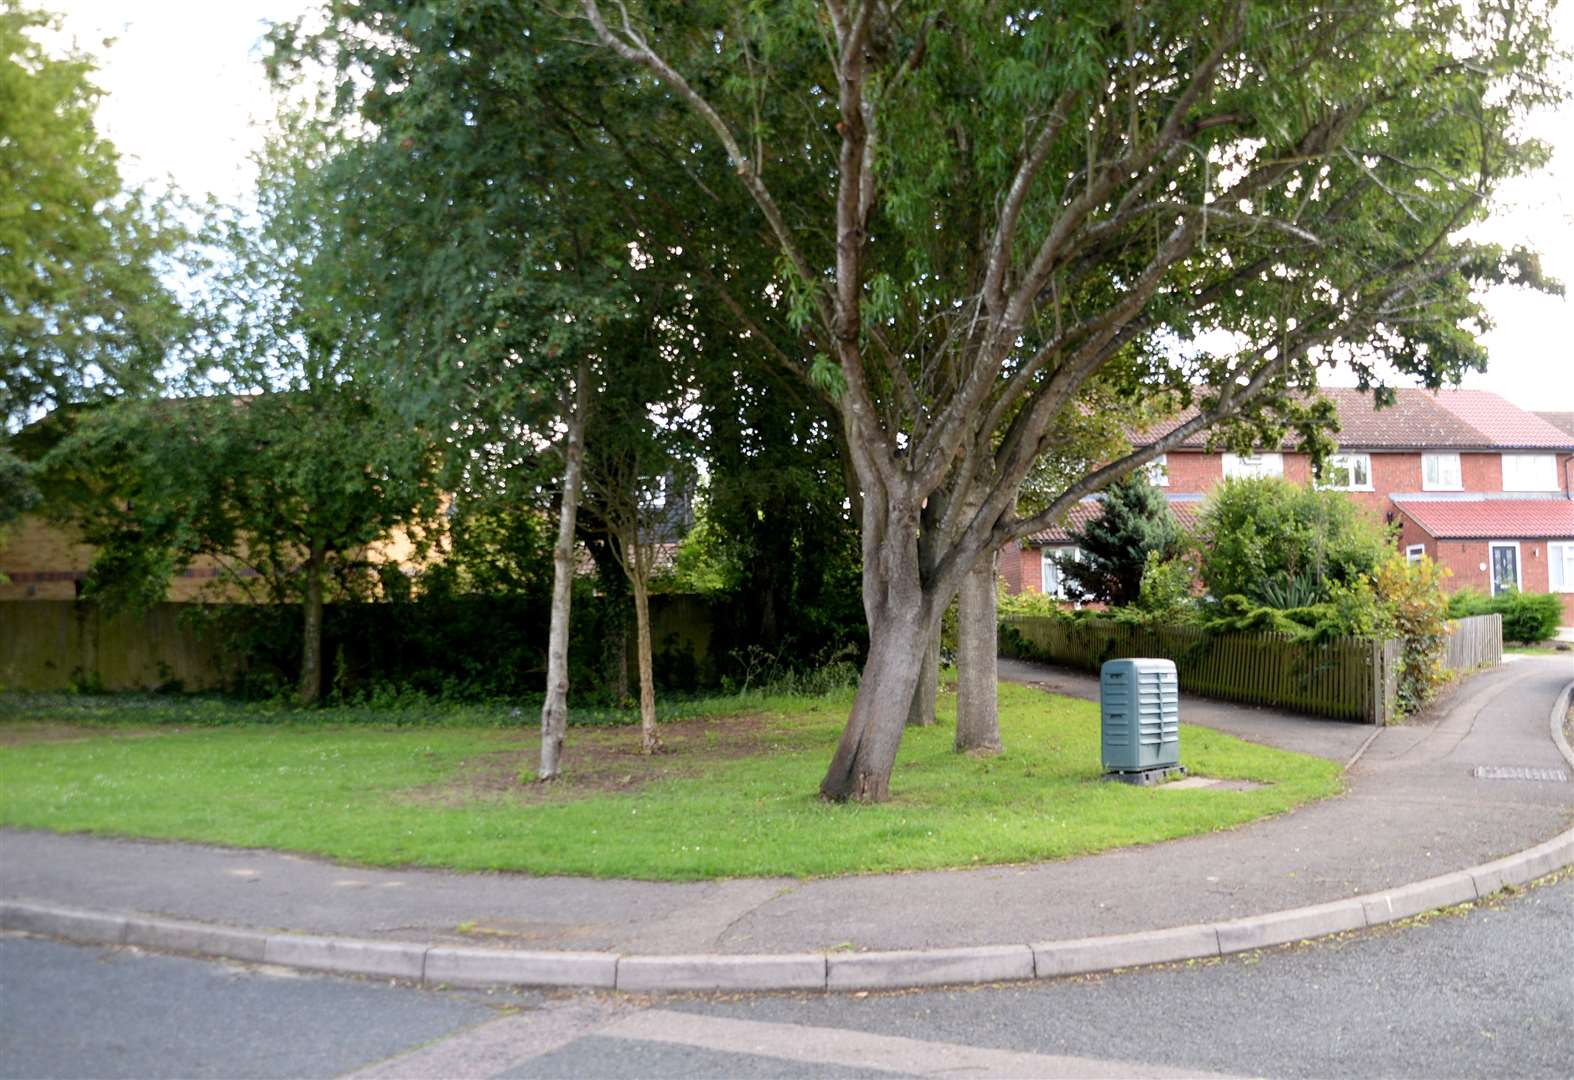 Council weeds out Thorley Park resident's plan to expand garden